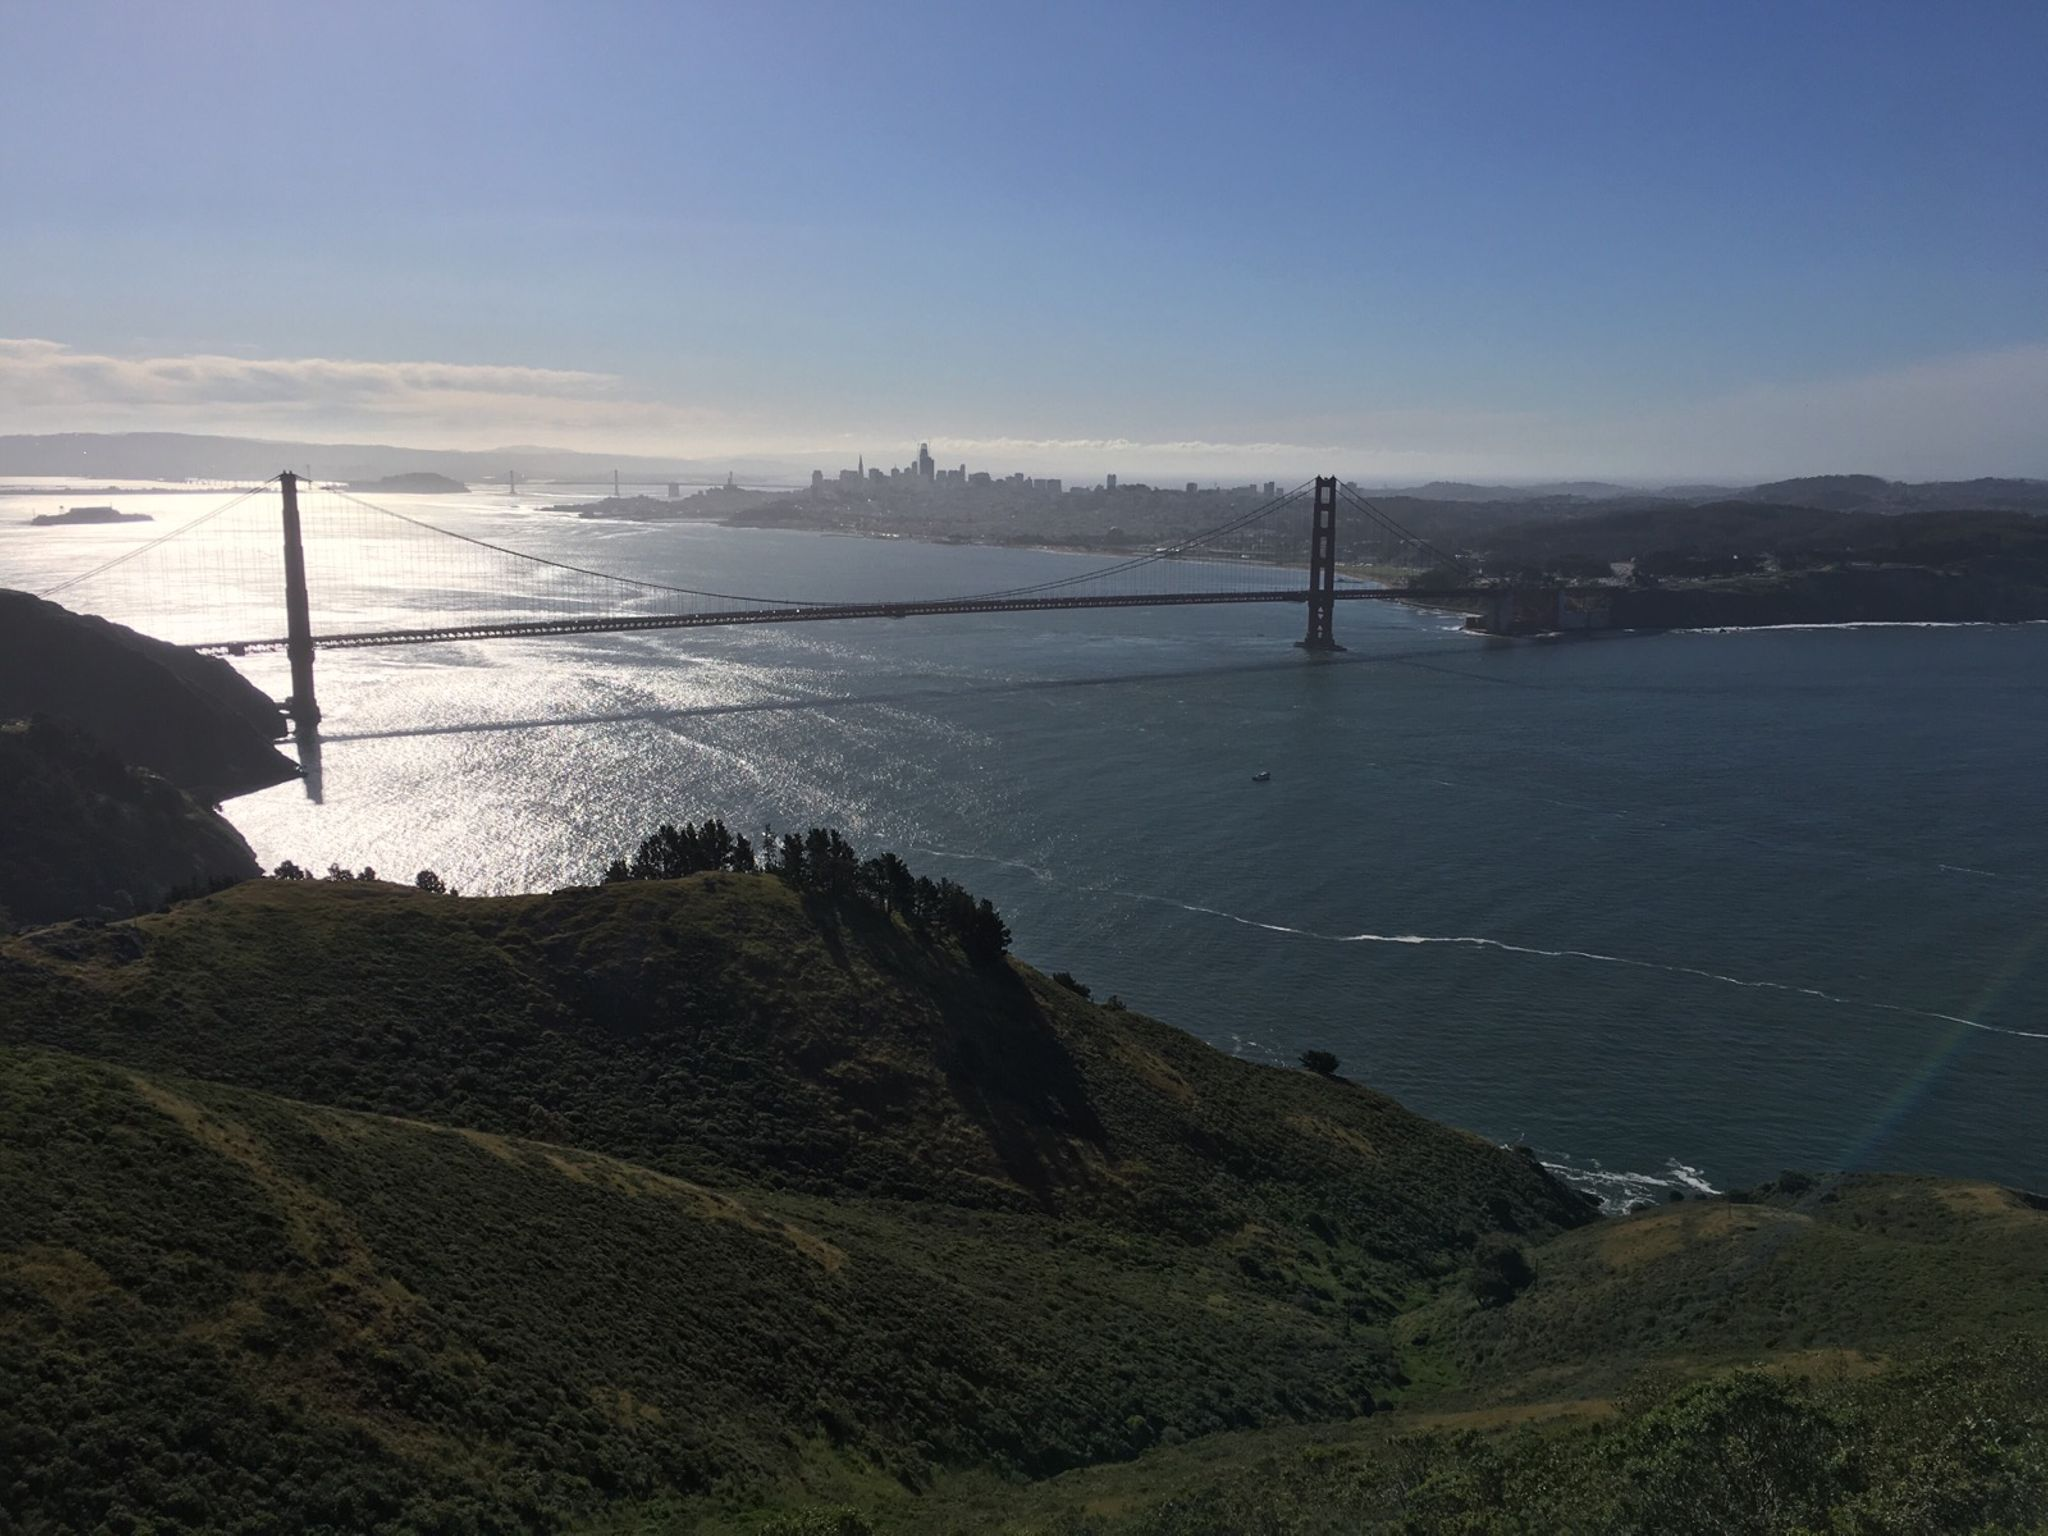 Golden Gate bridge from even higher